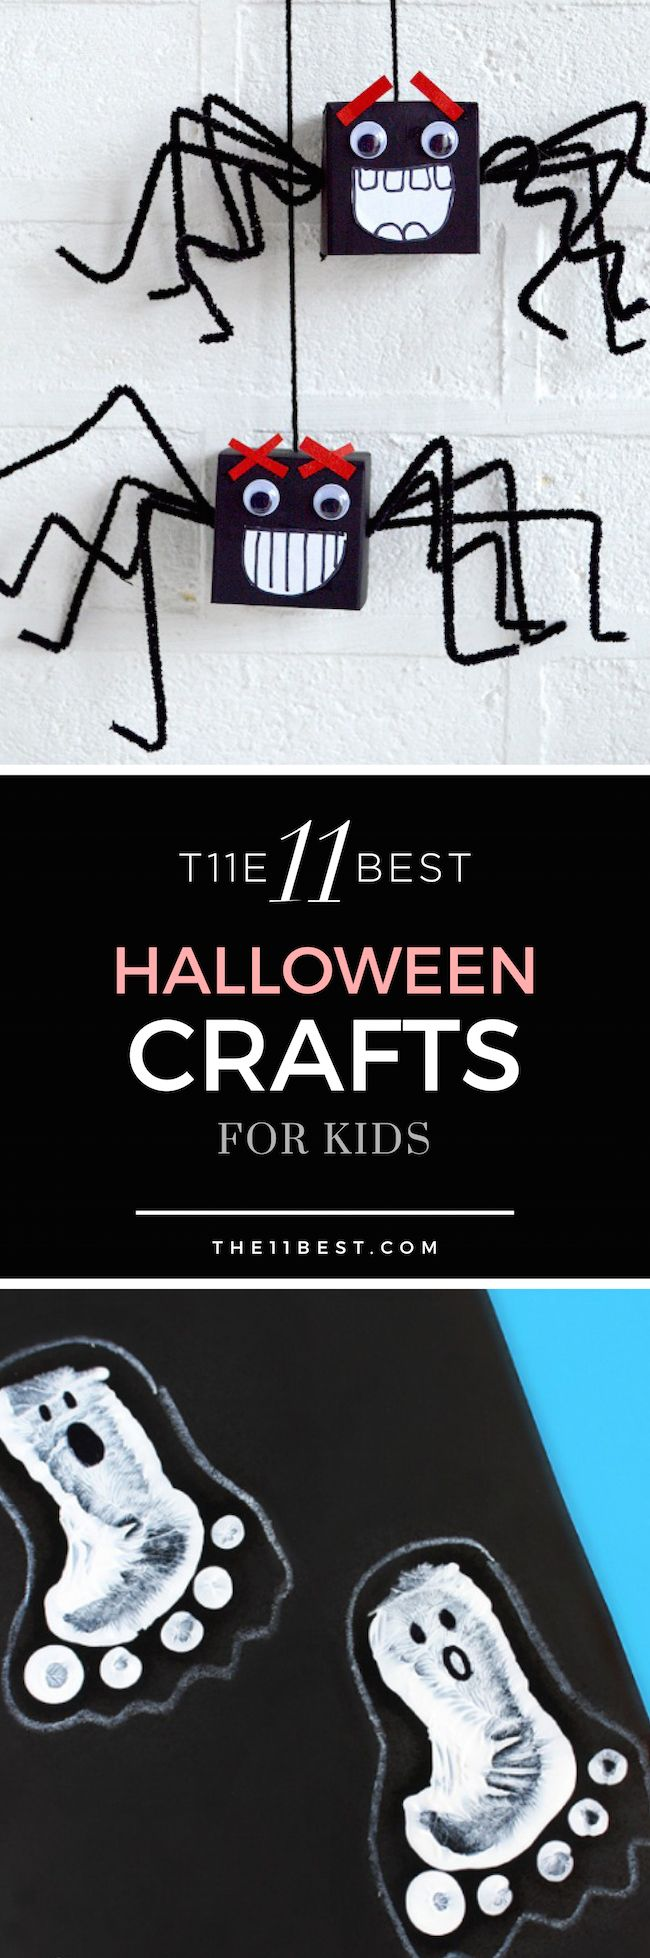 The 11 Best Halloween Crafts for Kids